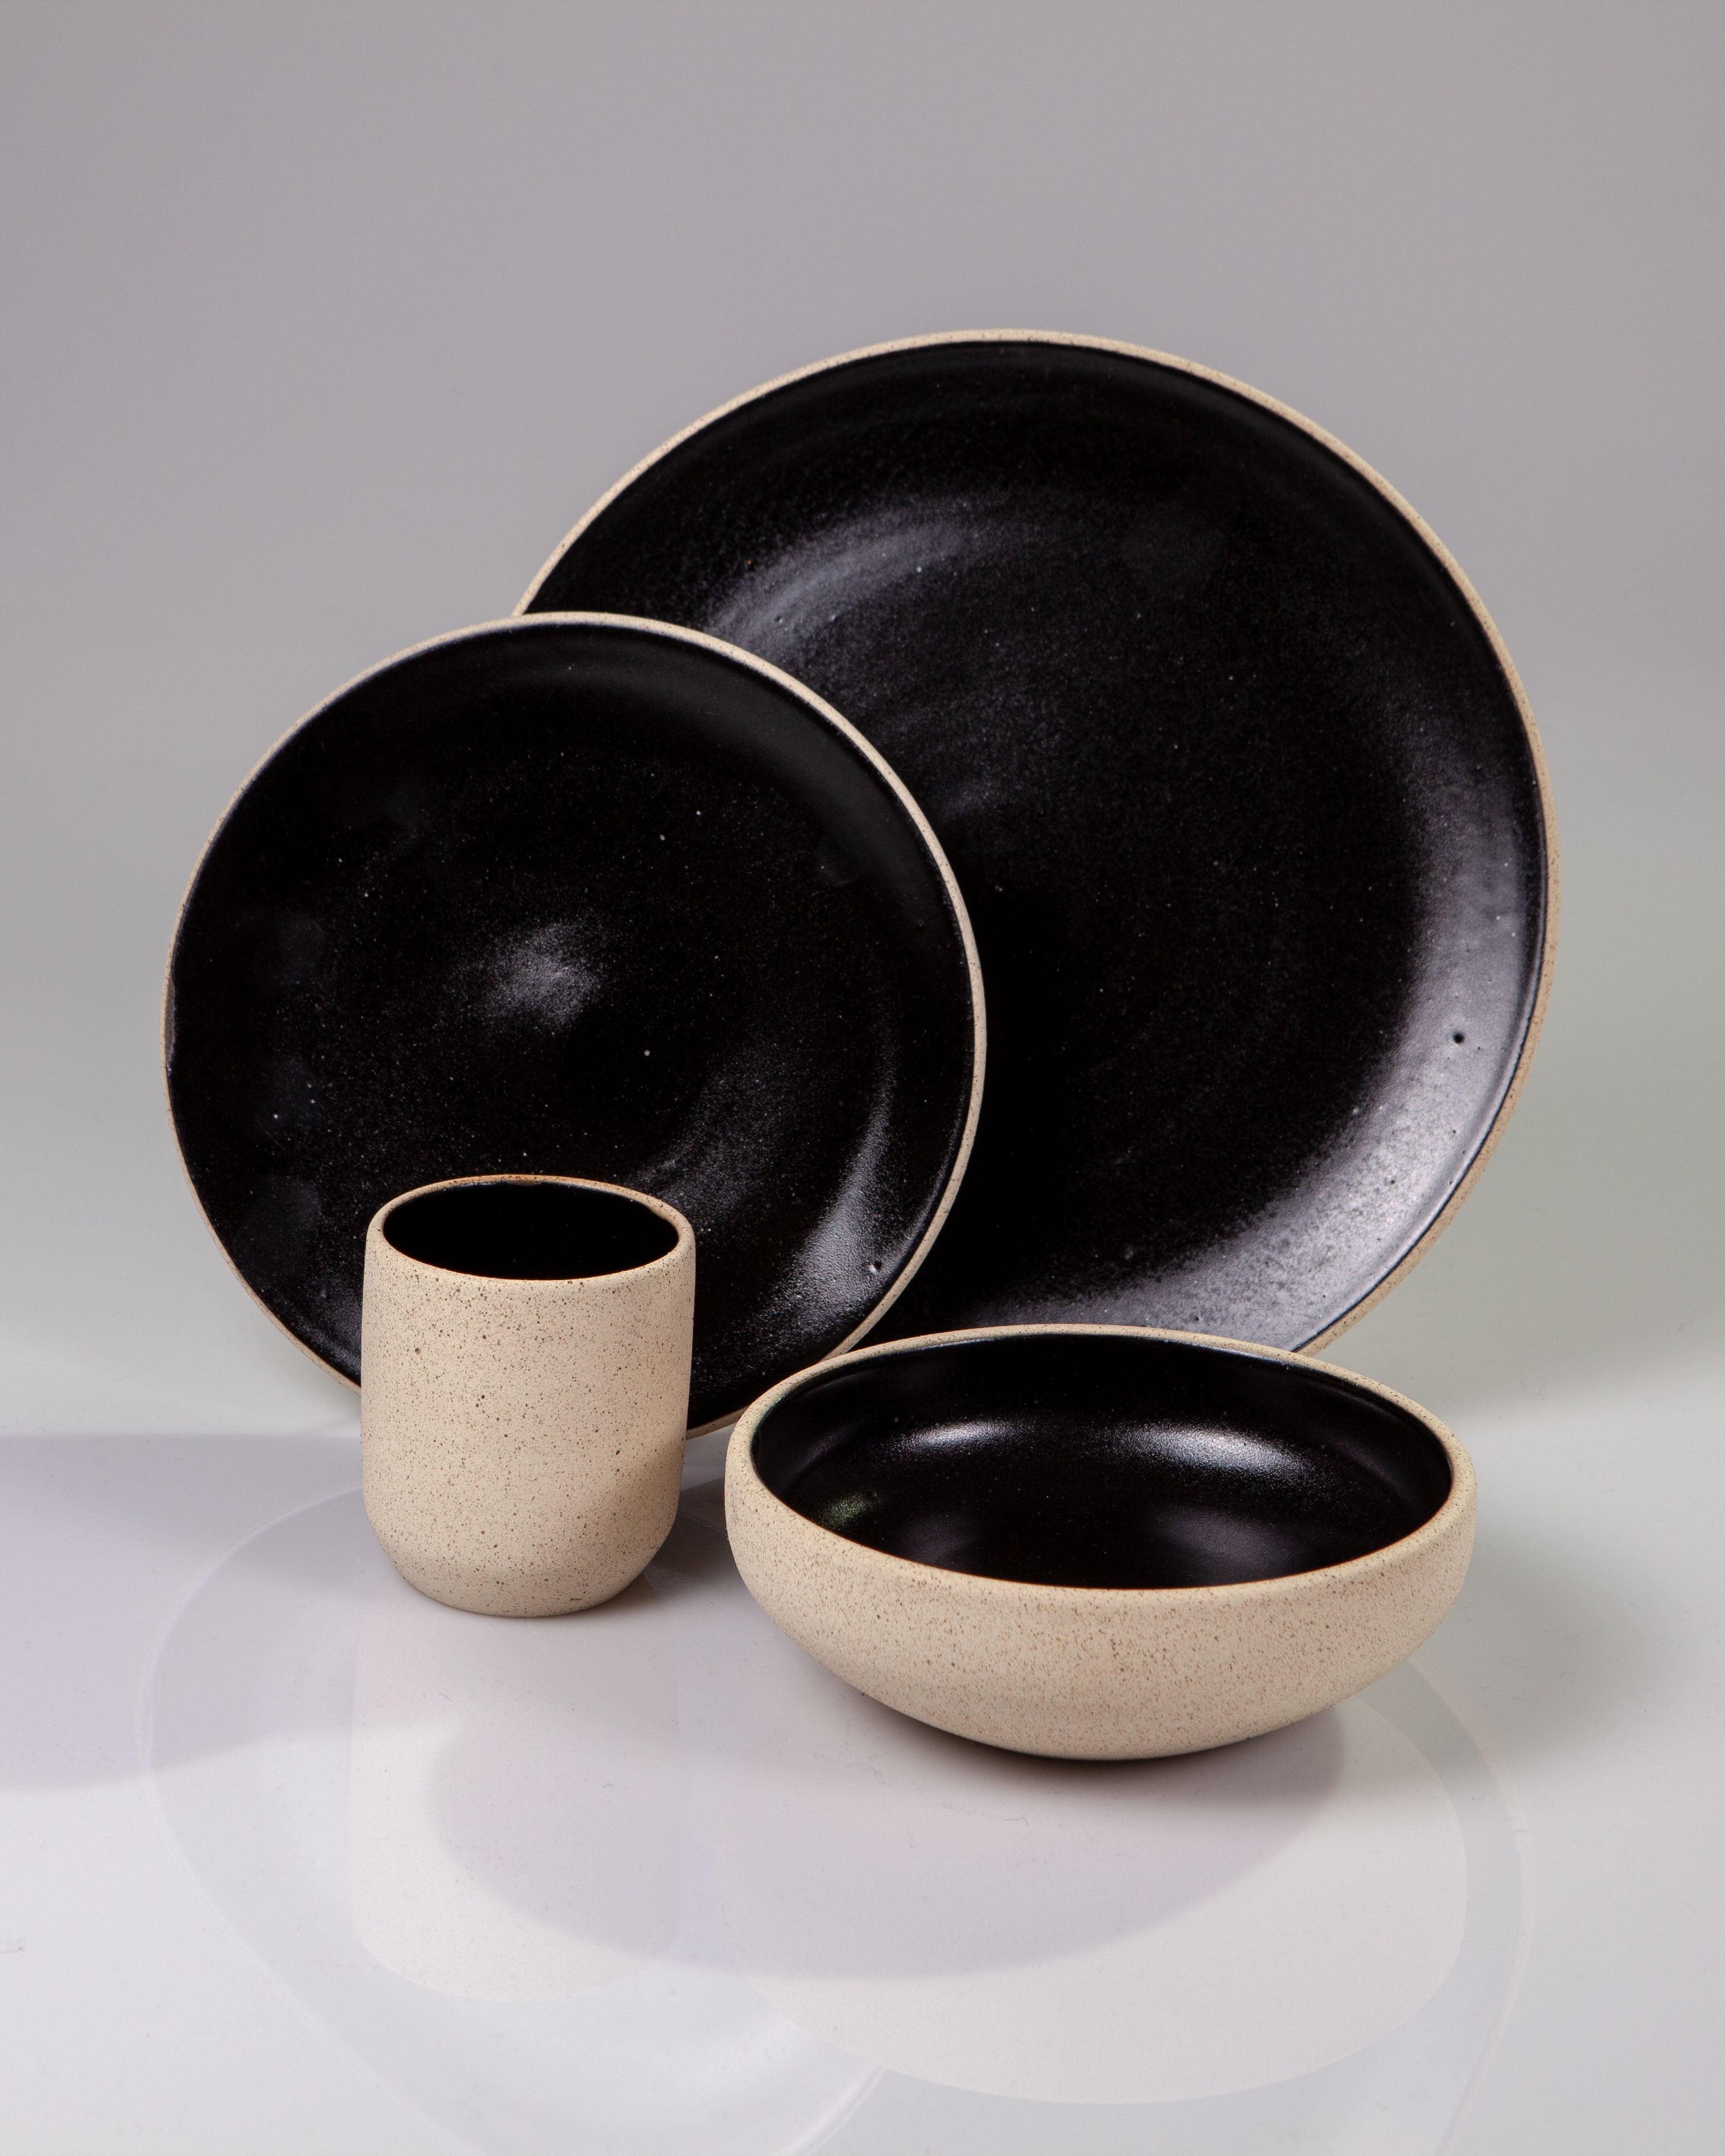 Handmade ceramic place setting plates cup bowl obsidian black organic texture